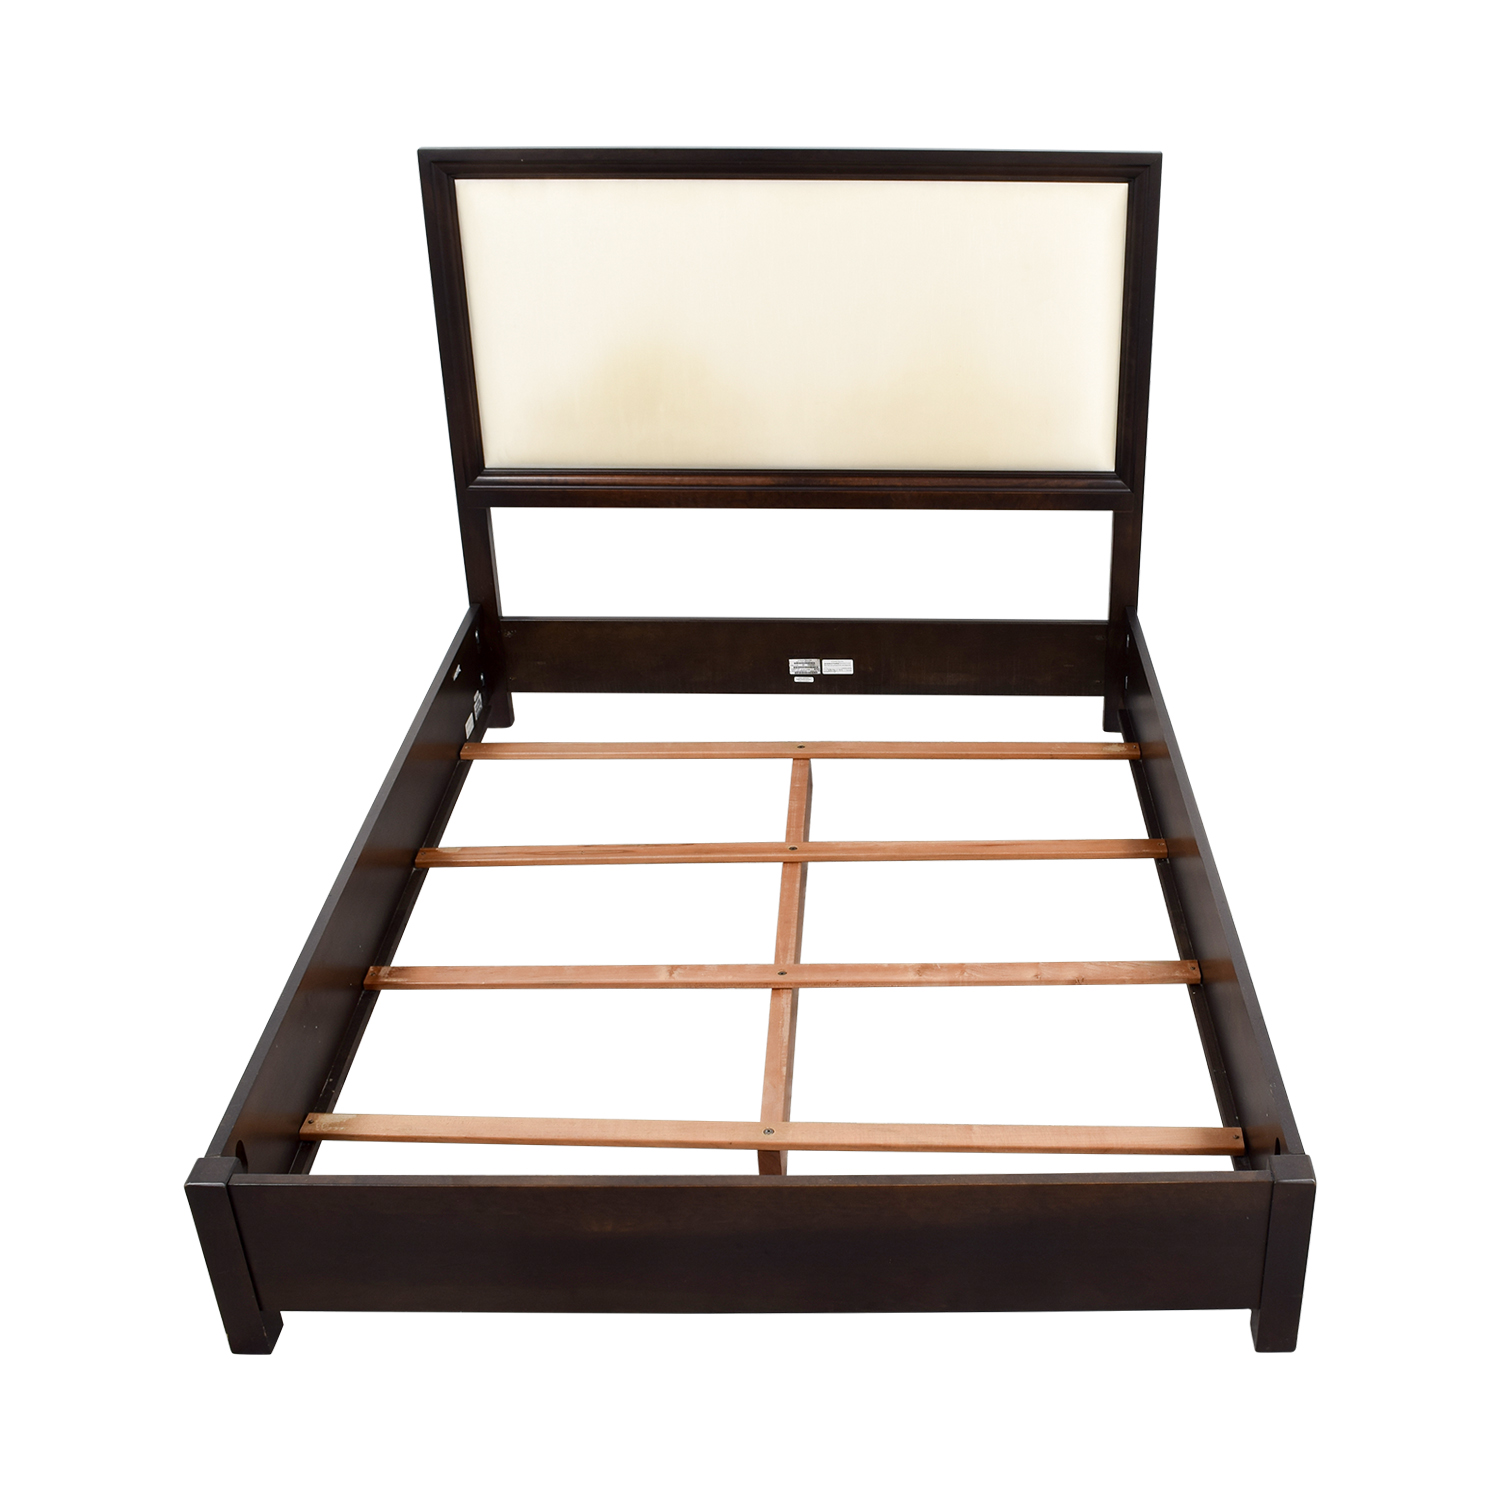 Ethan Allen Wood and Cream Upholstered Queen Bed Frame Ethan Allen